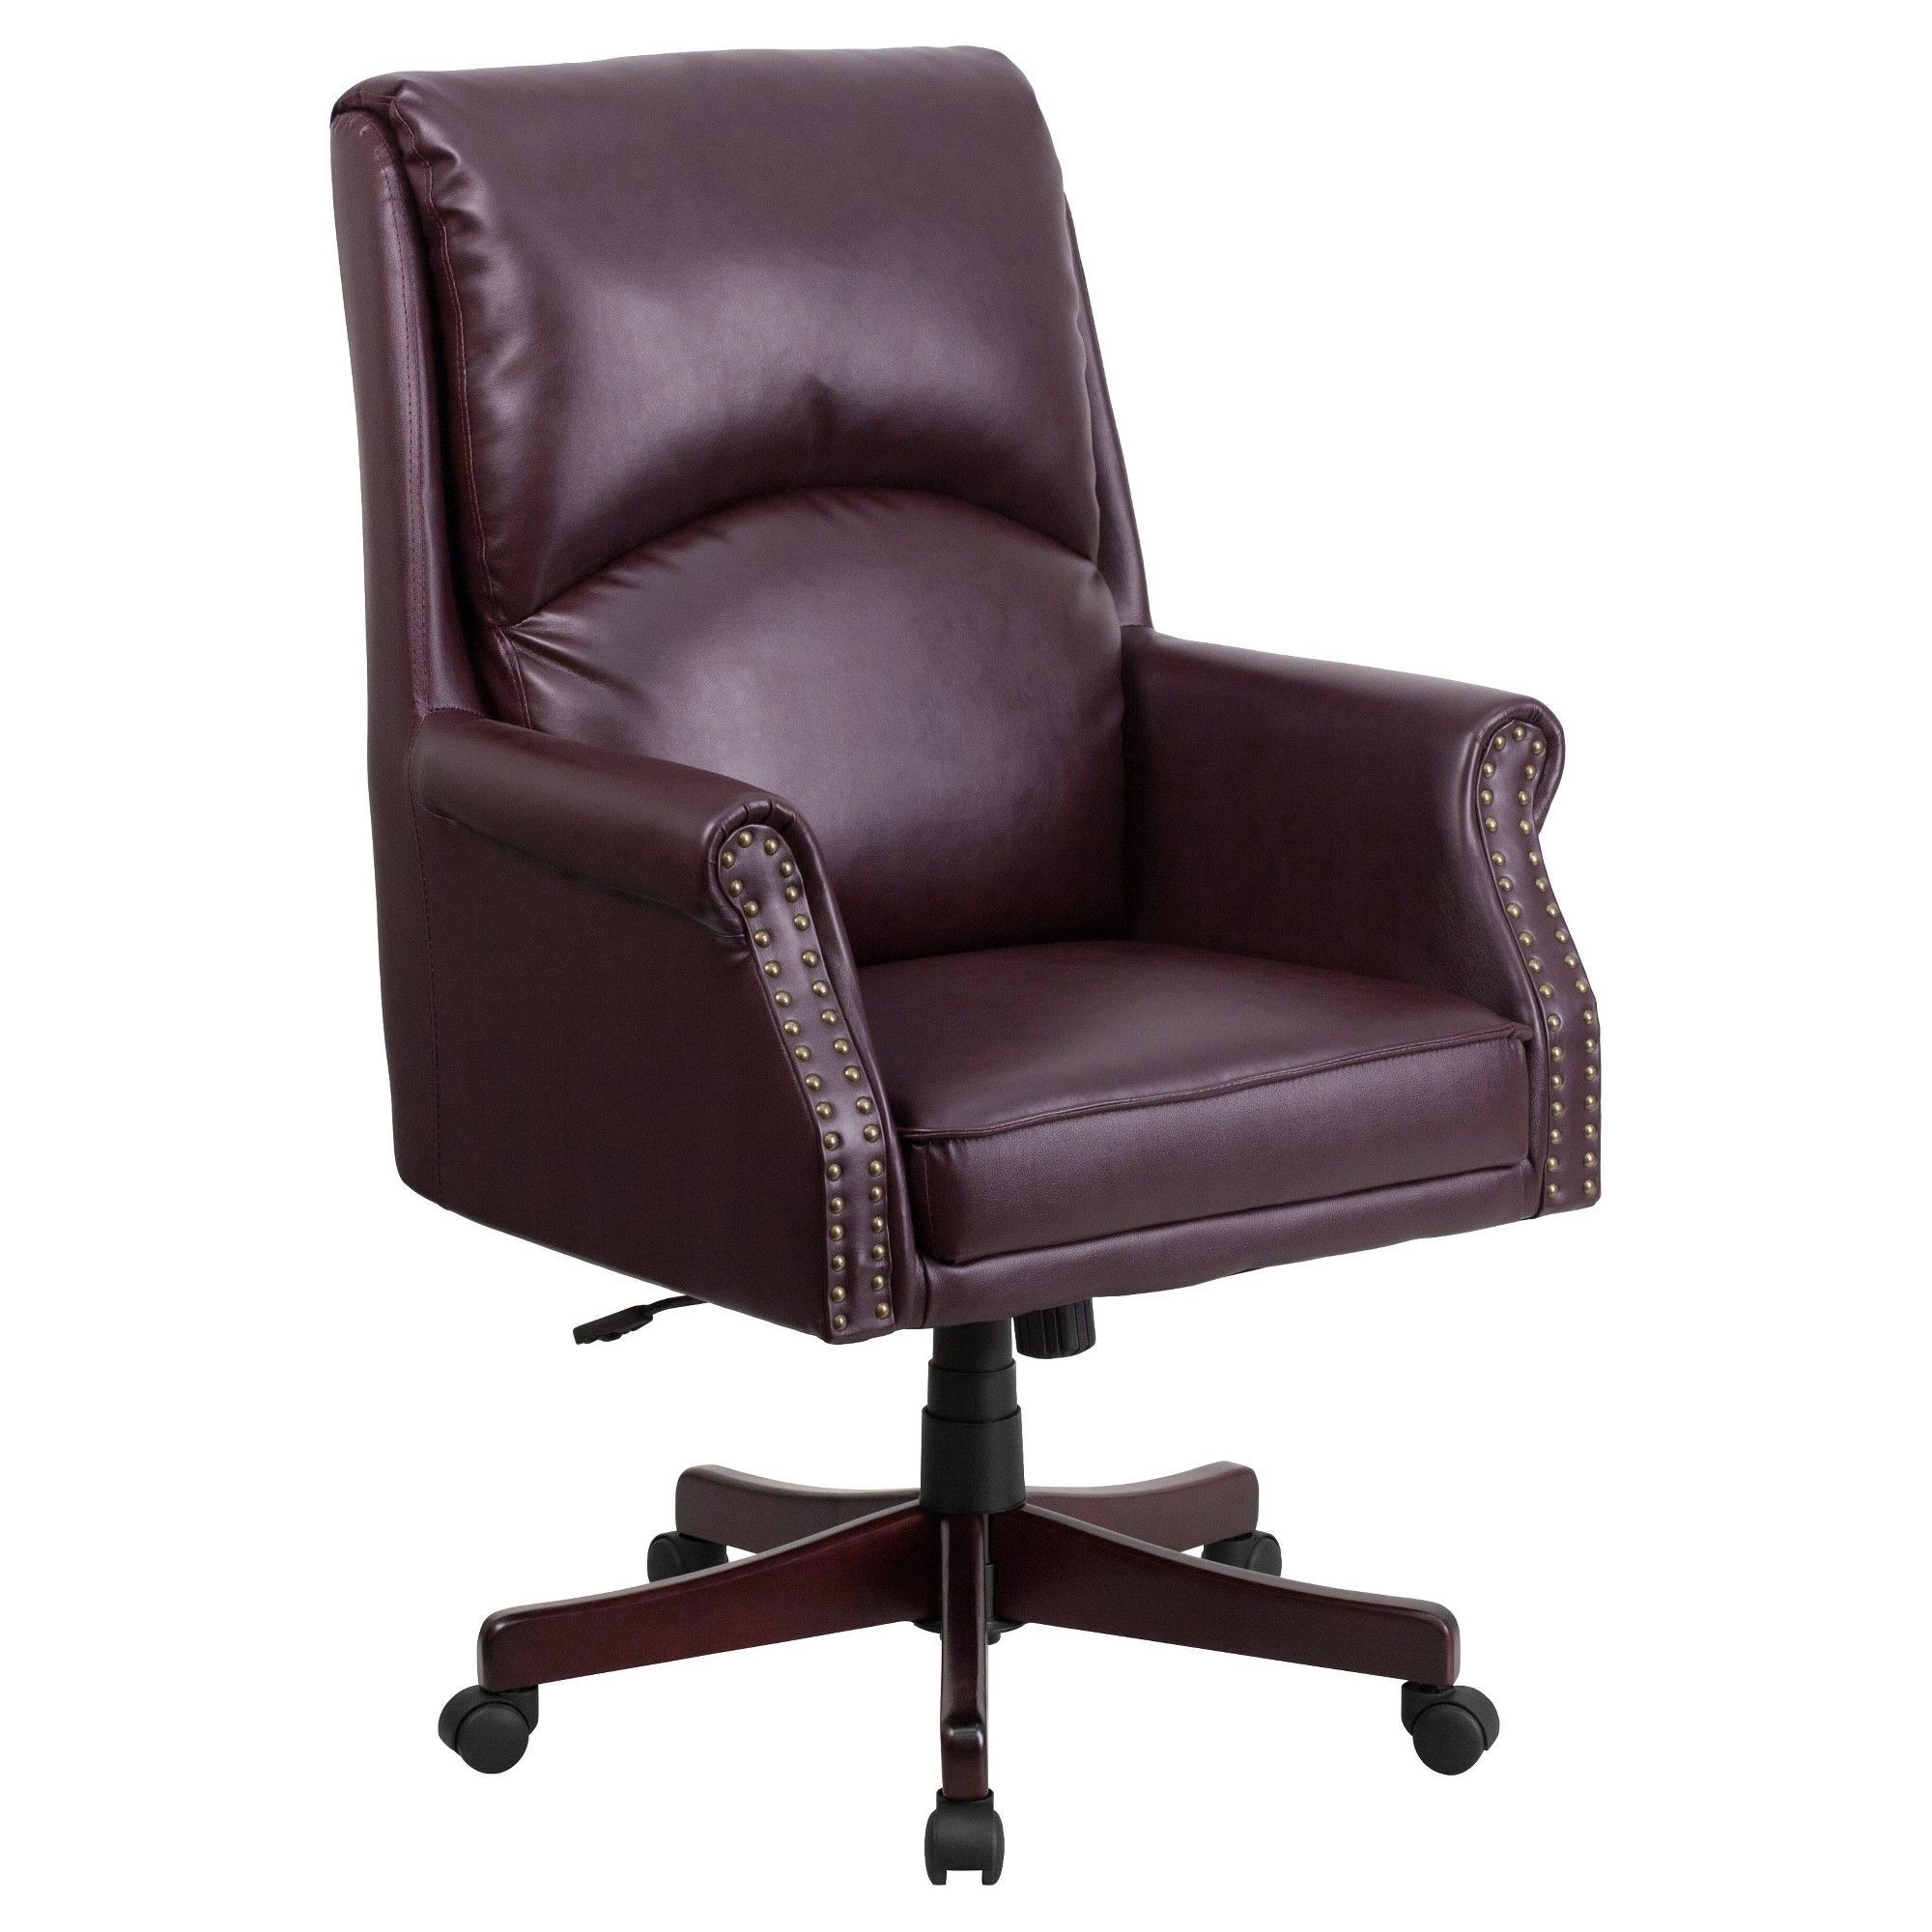 High back pillow back burgundy red leather executive swivel office